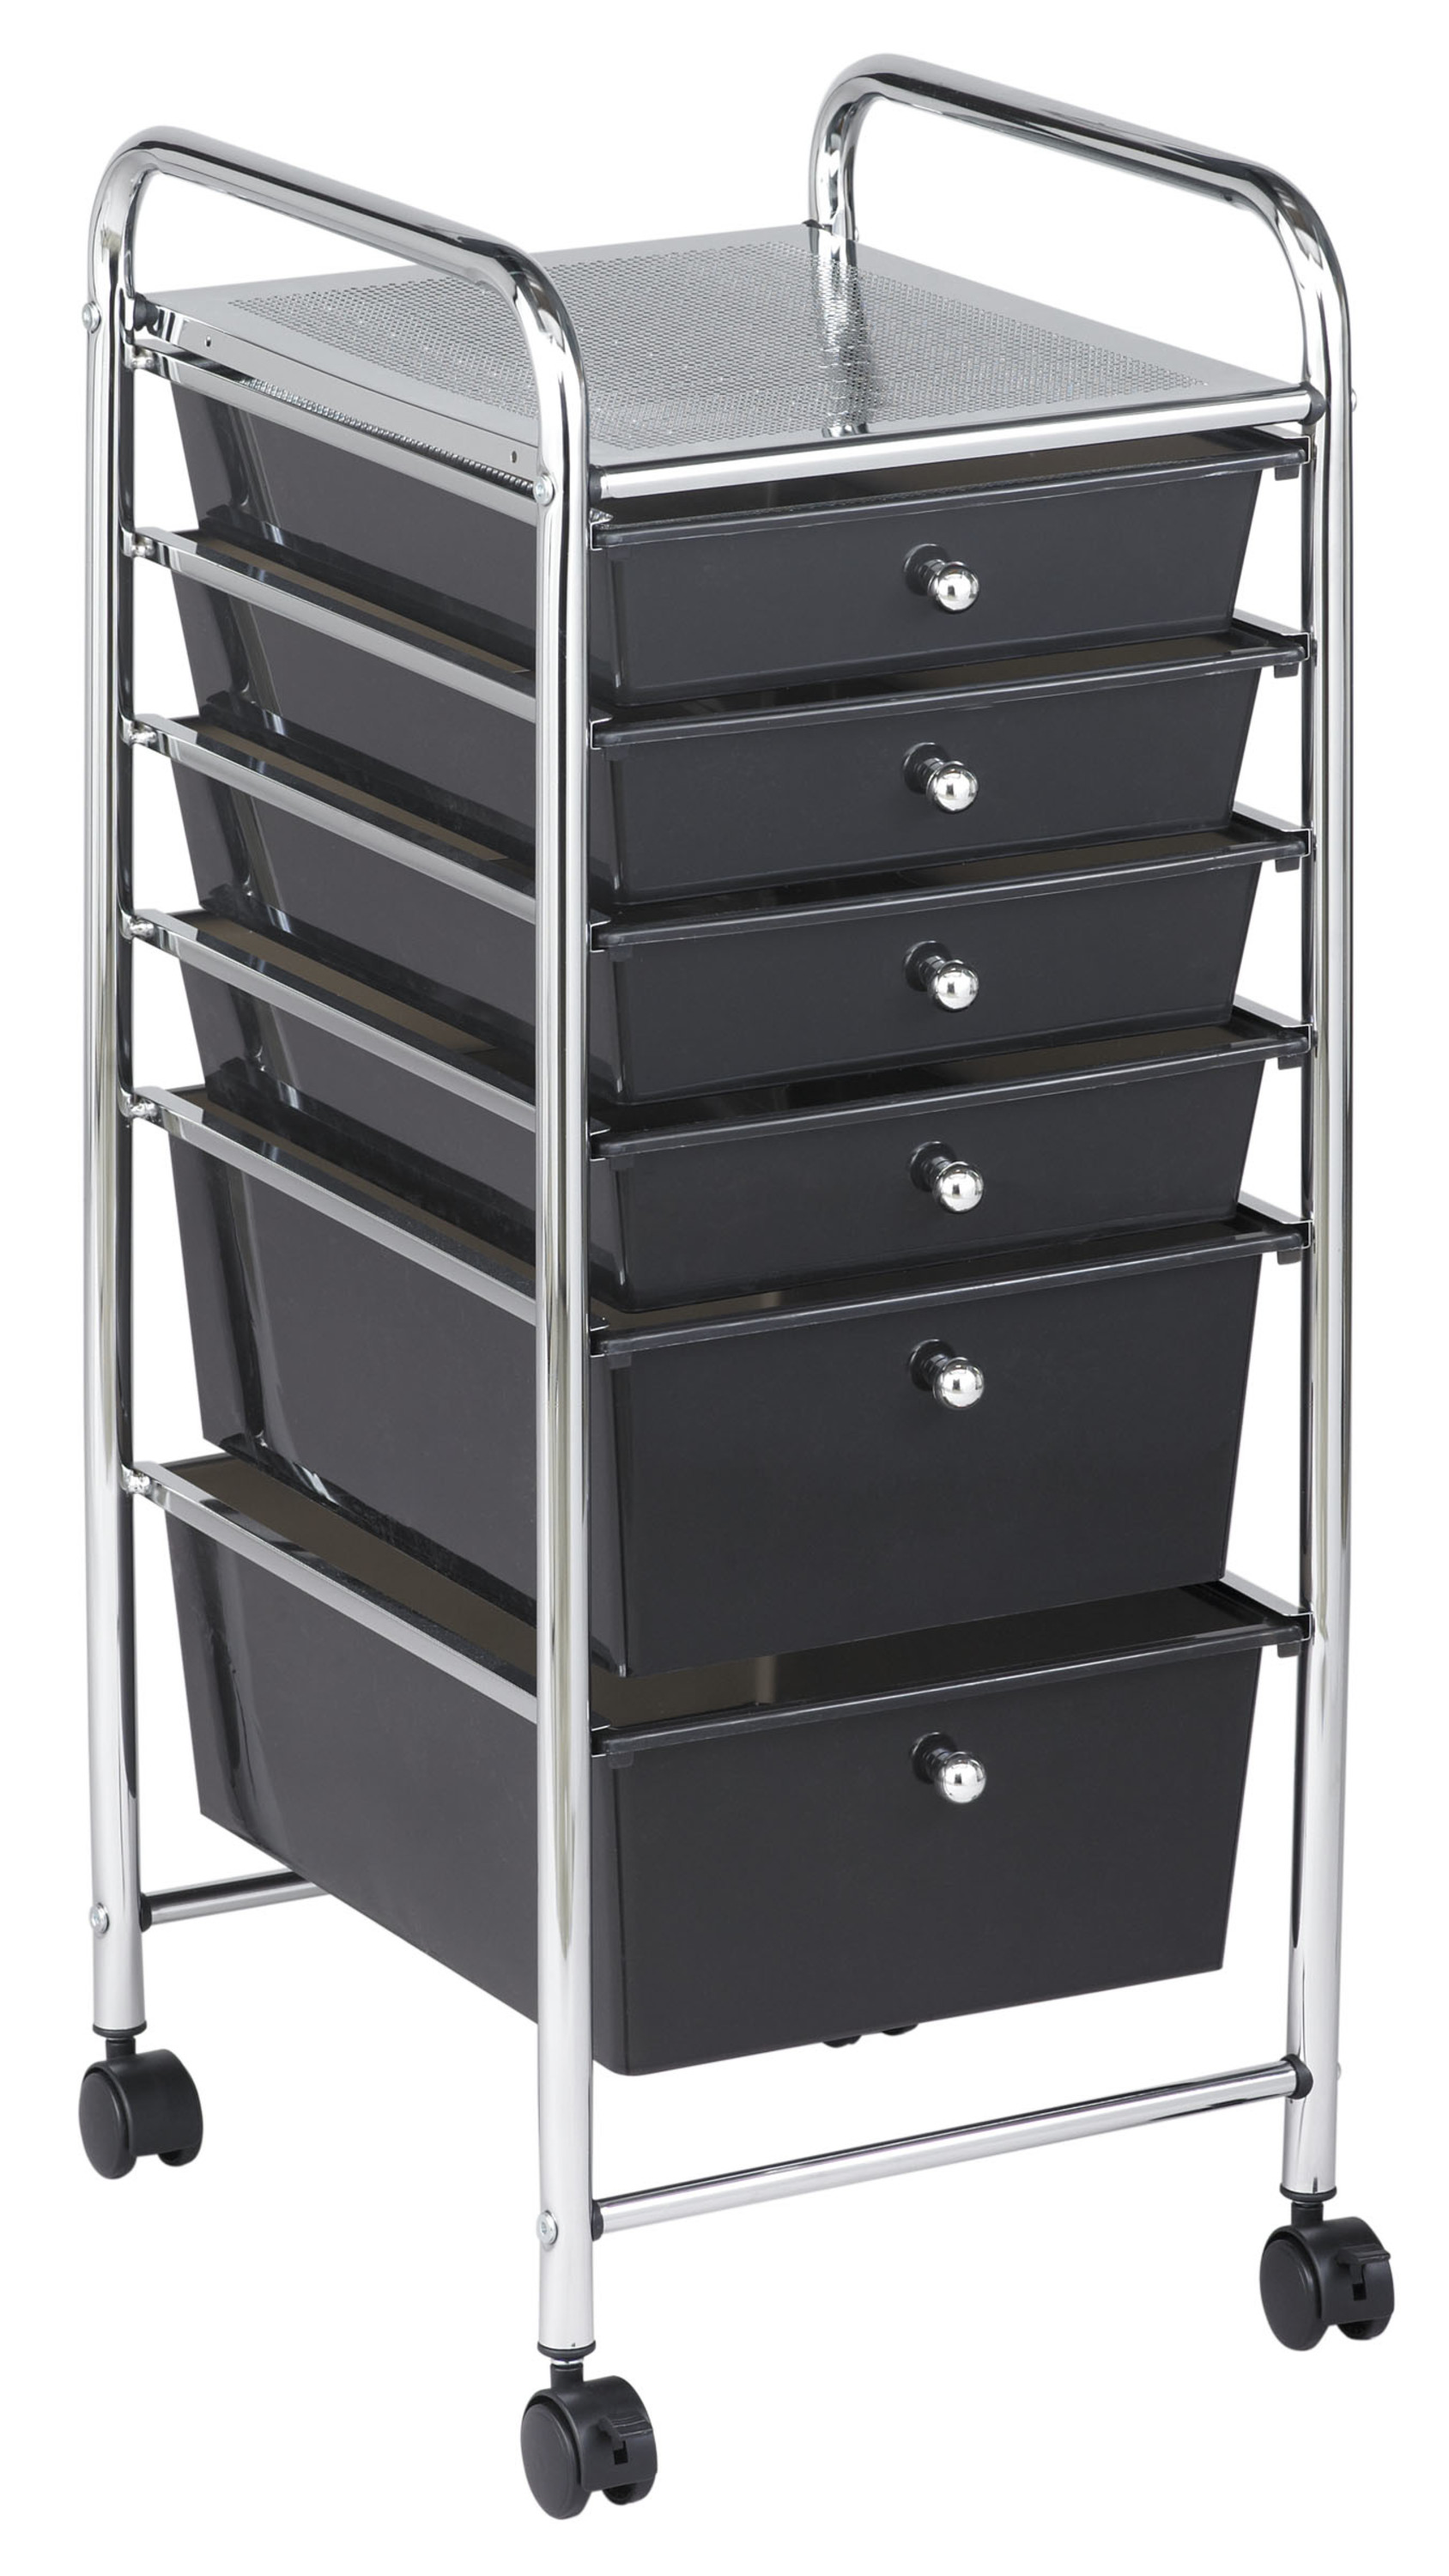 6 Drawer Mobile Organizer Grayscale by ECR4Kids